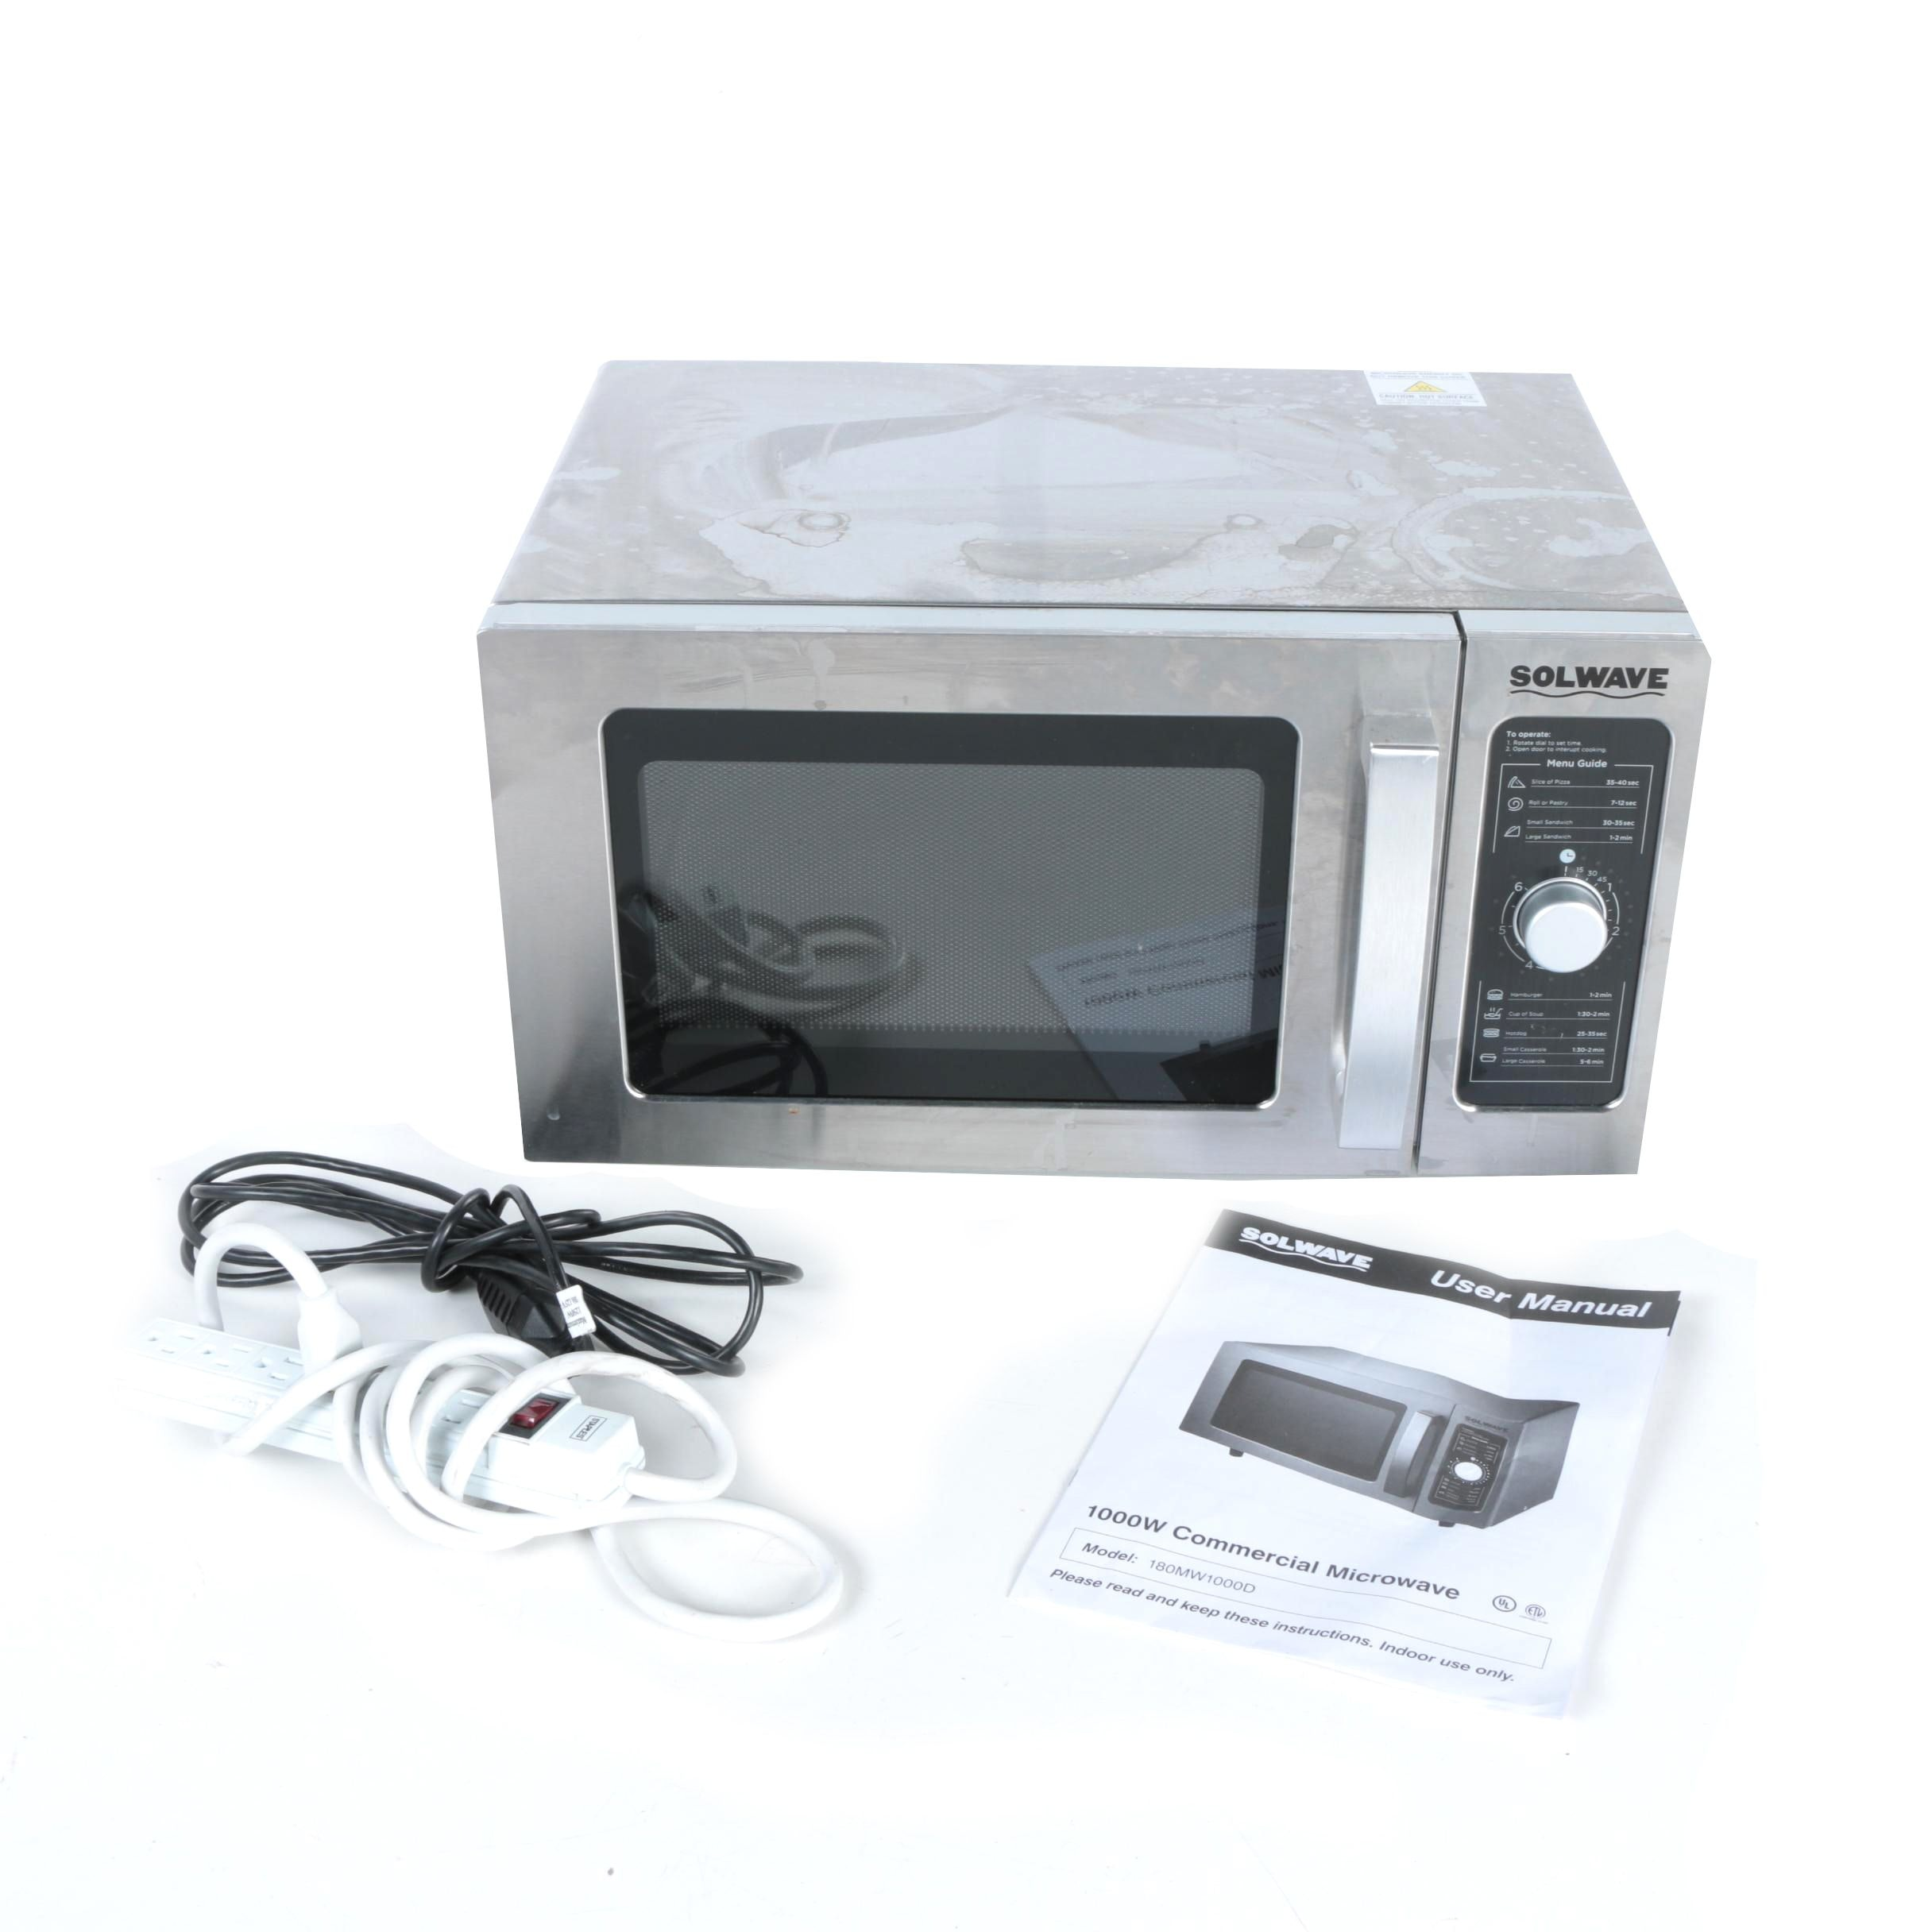 Solwave 1000W Commercial Microwave